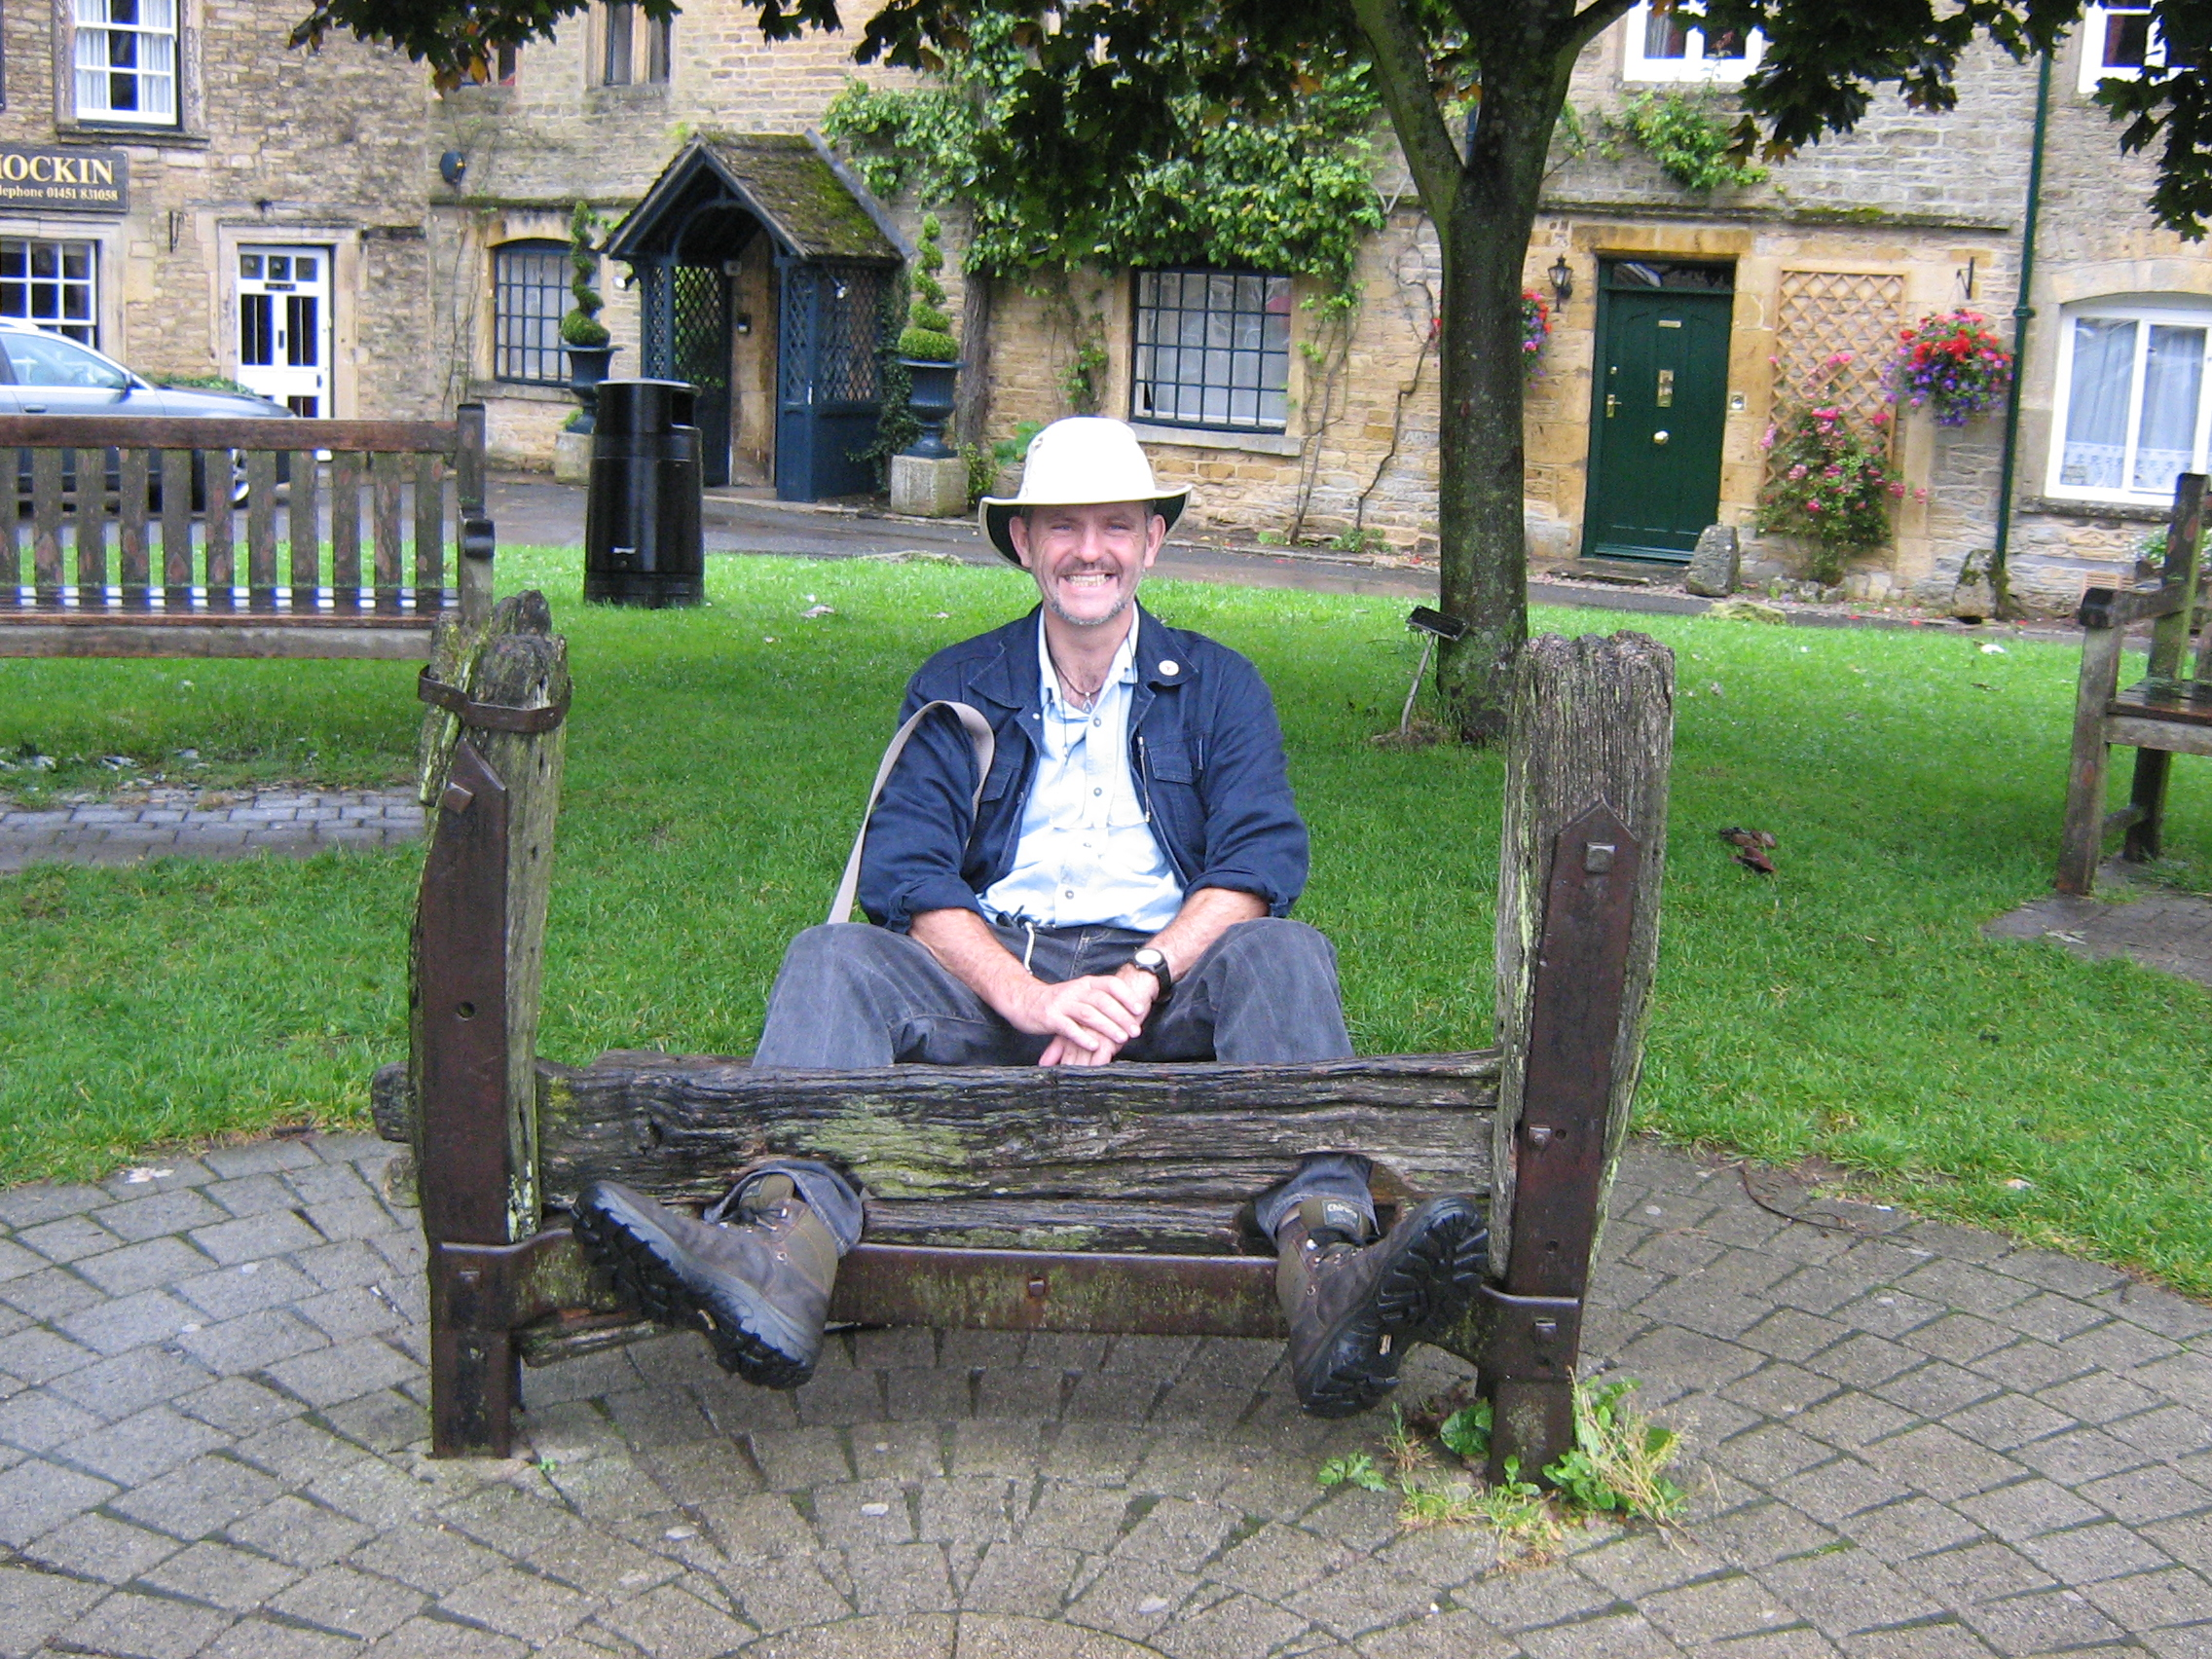 Alan being punished in Stow for not working harder on the blog